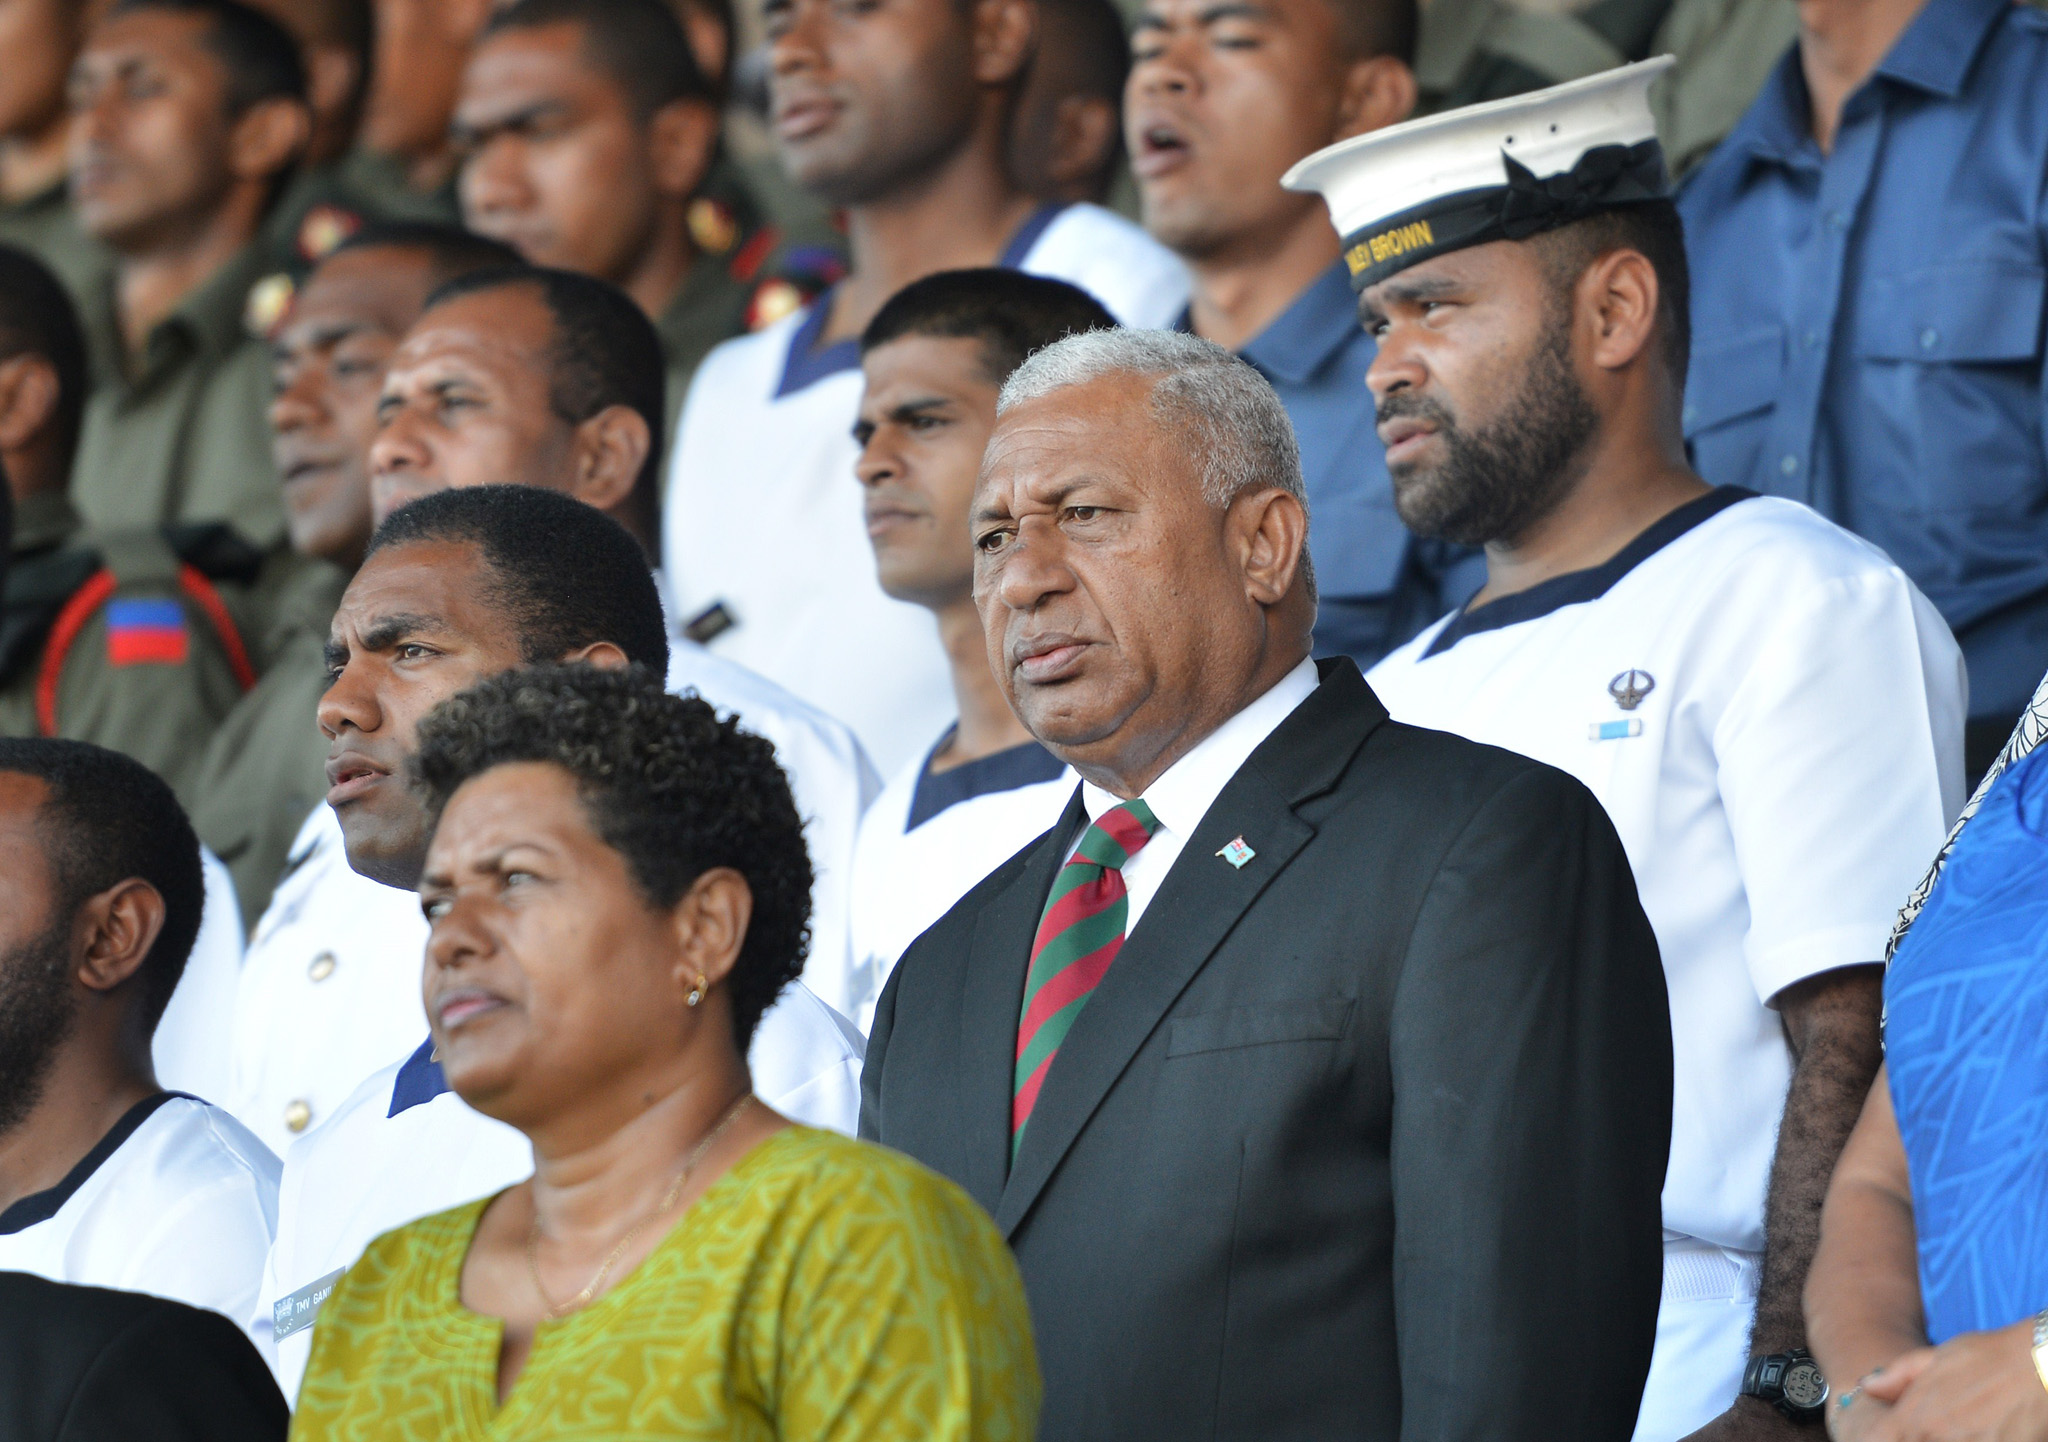 Fiji's military strongman Voreqe Bainima...Fiji's military strongman Voreqe Bainimarama (C) attends a national thanksgiving service for the release of the 45 Fijian peacekeepers kidnapped by Al-Qaeda linked Syrian rebels on the Golan Heights last month, at the ANZ Stadium in the capital Suva on September 16, 2014. Speaking at the service, Fiji President Epeli Nailatikau called for a violence-free election as the South pacific nation prepares to return to democracy almost eight years after a military coup. AFP PHOTO/Peter PARKSPETER PARKS/AFP/Getty Images